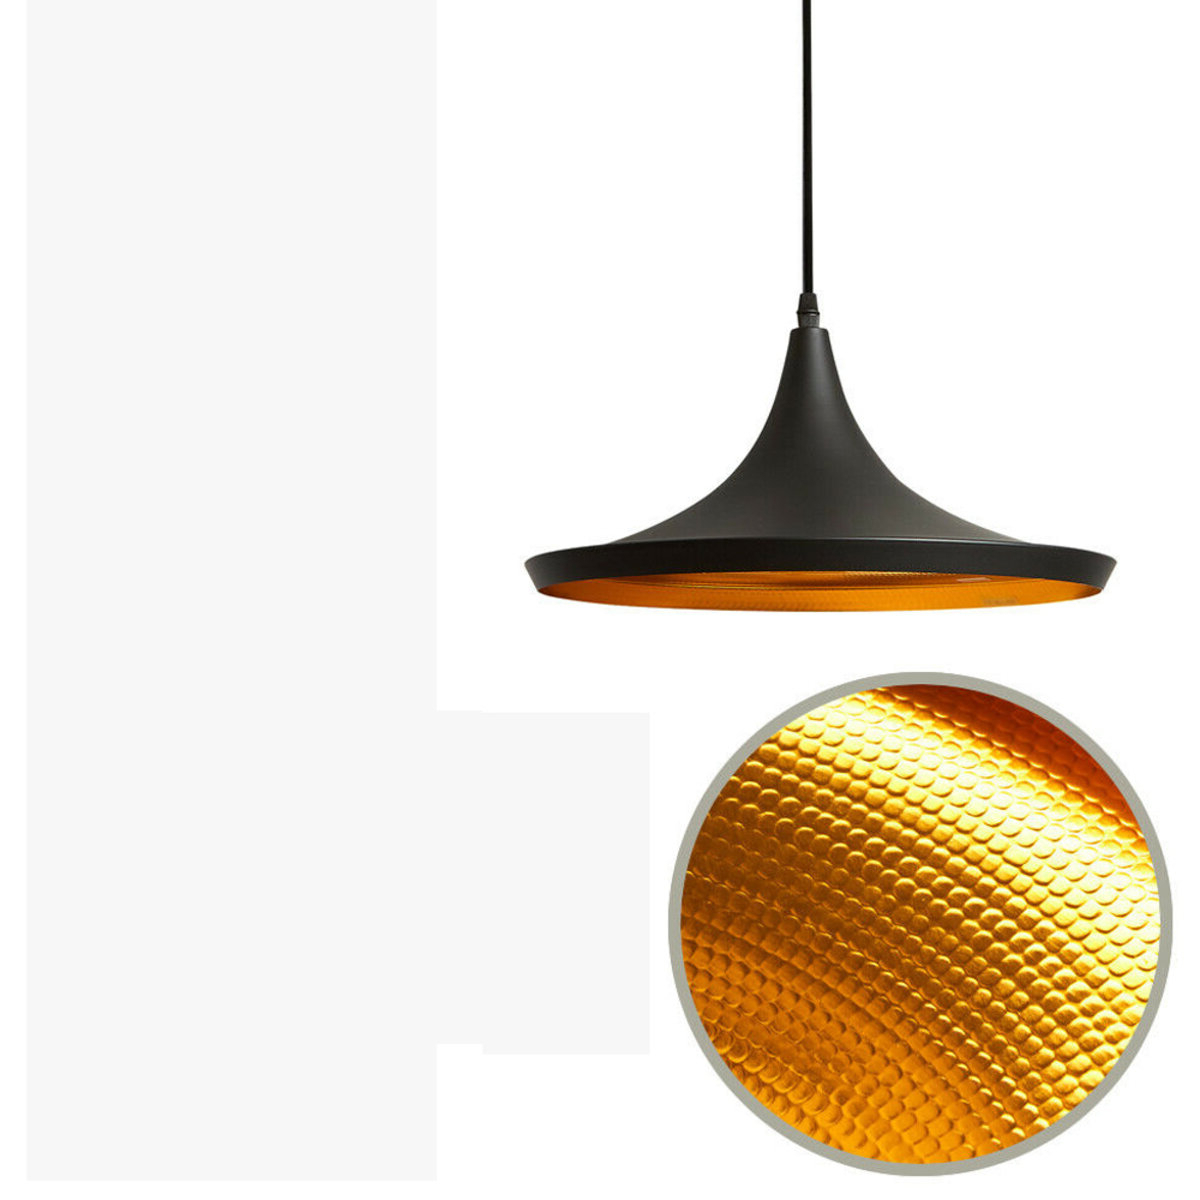 Details About Pendant Light Led Ceiling Lights Lamp Shade Industrial Cafe  Lighting Kitchen Bar inside Latest Akash Industrial Vintage 1-Light Geometric Pendants